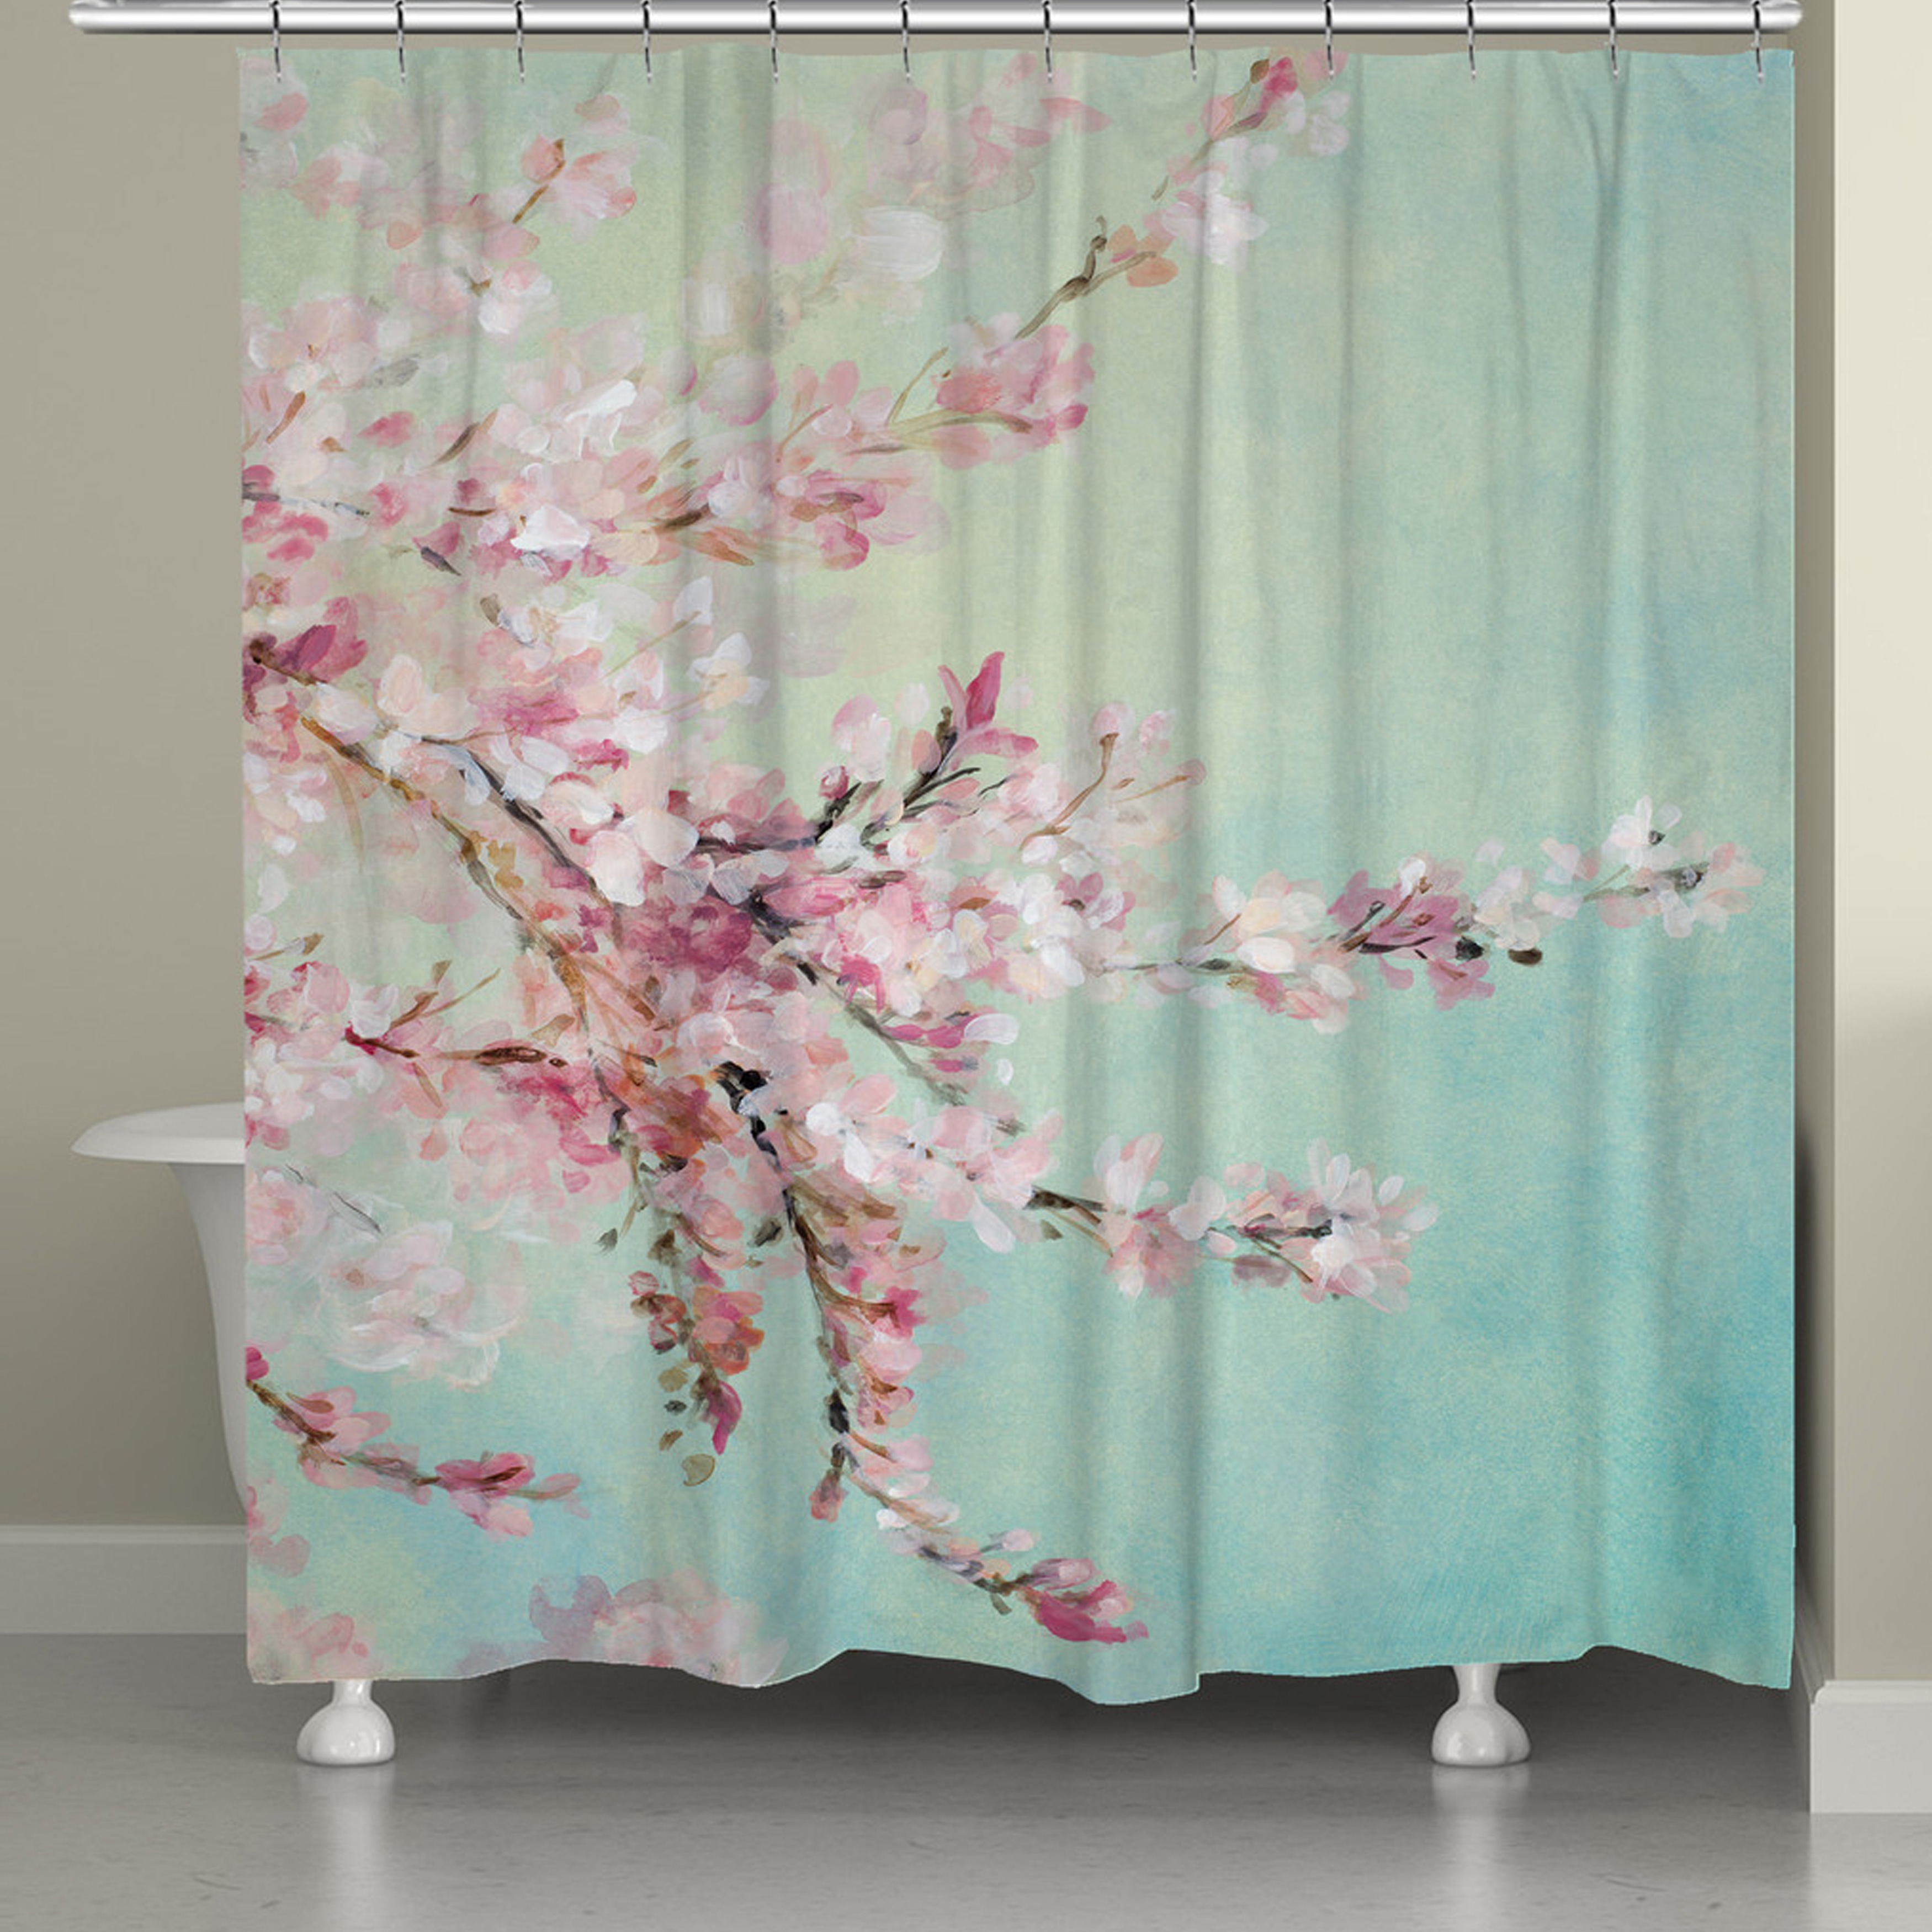 Laural Home Cherry Blossom Blooms Shower Curtain